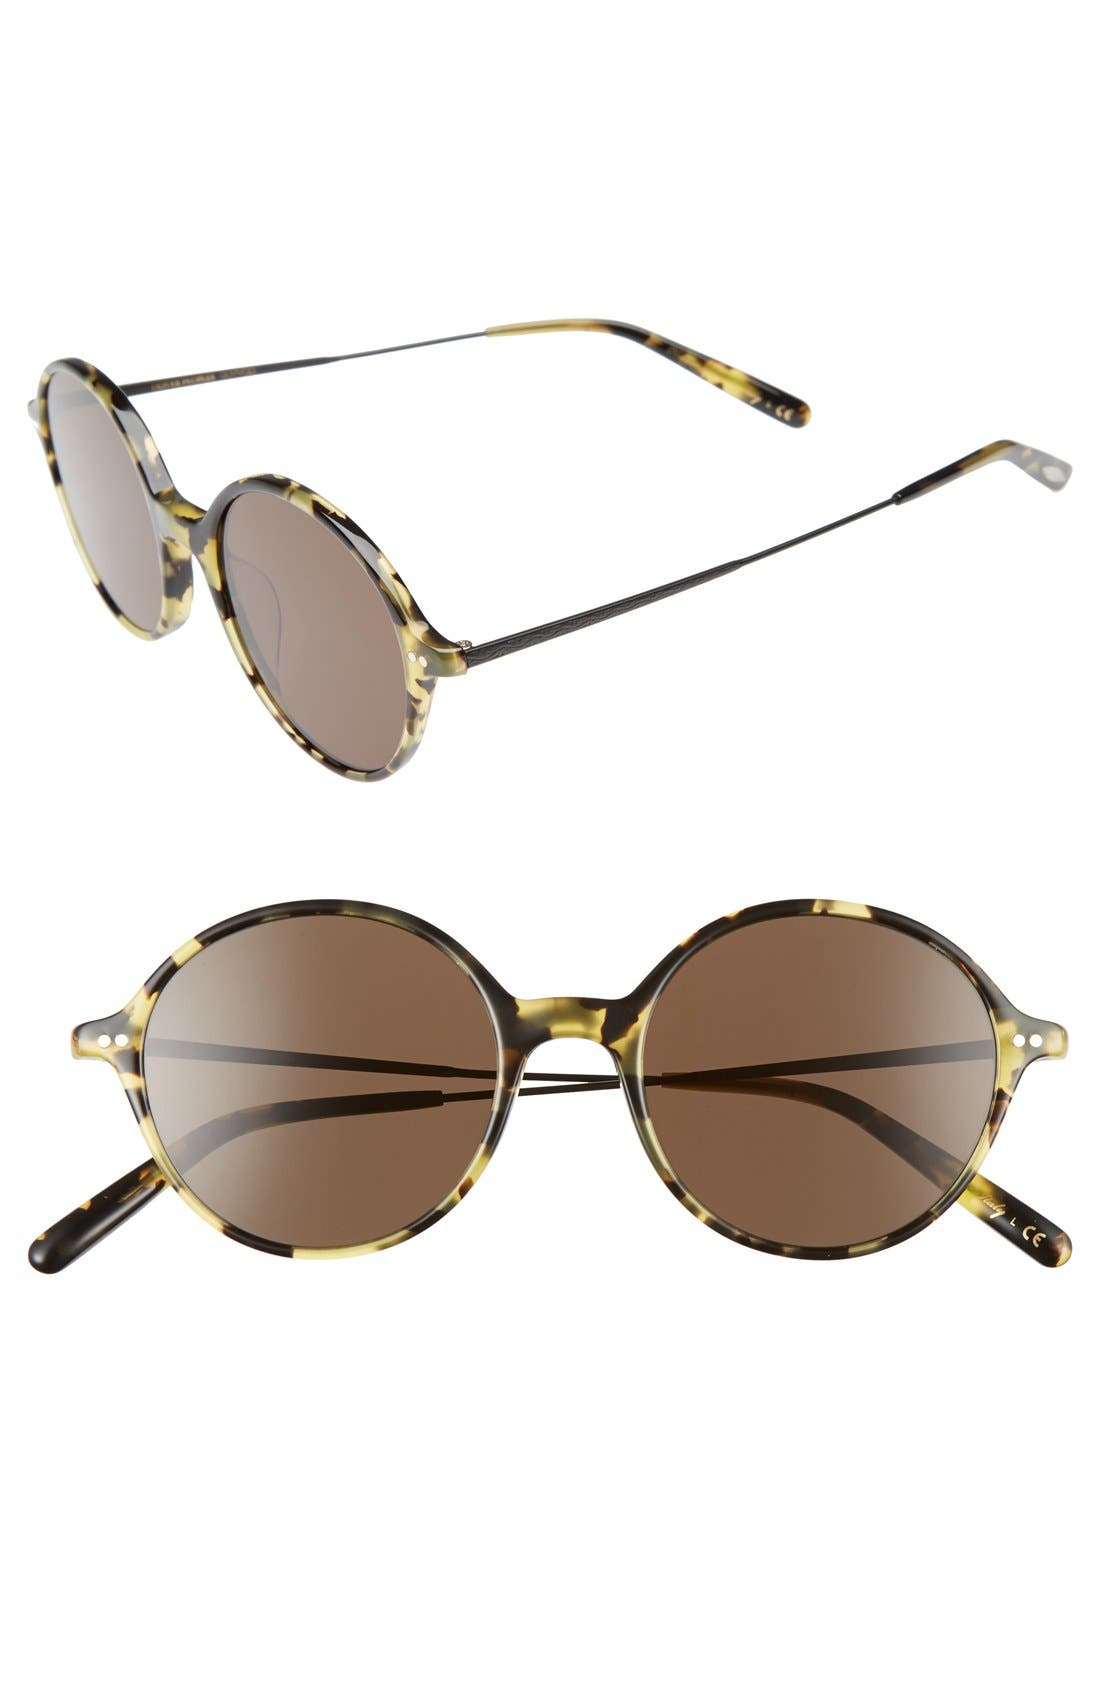 Corby 51mm Round Sunglasses,                             Main thumbnail 1, color,